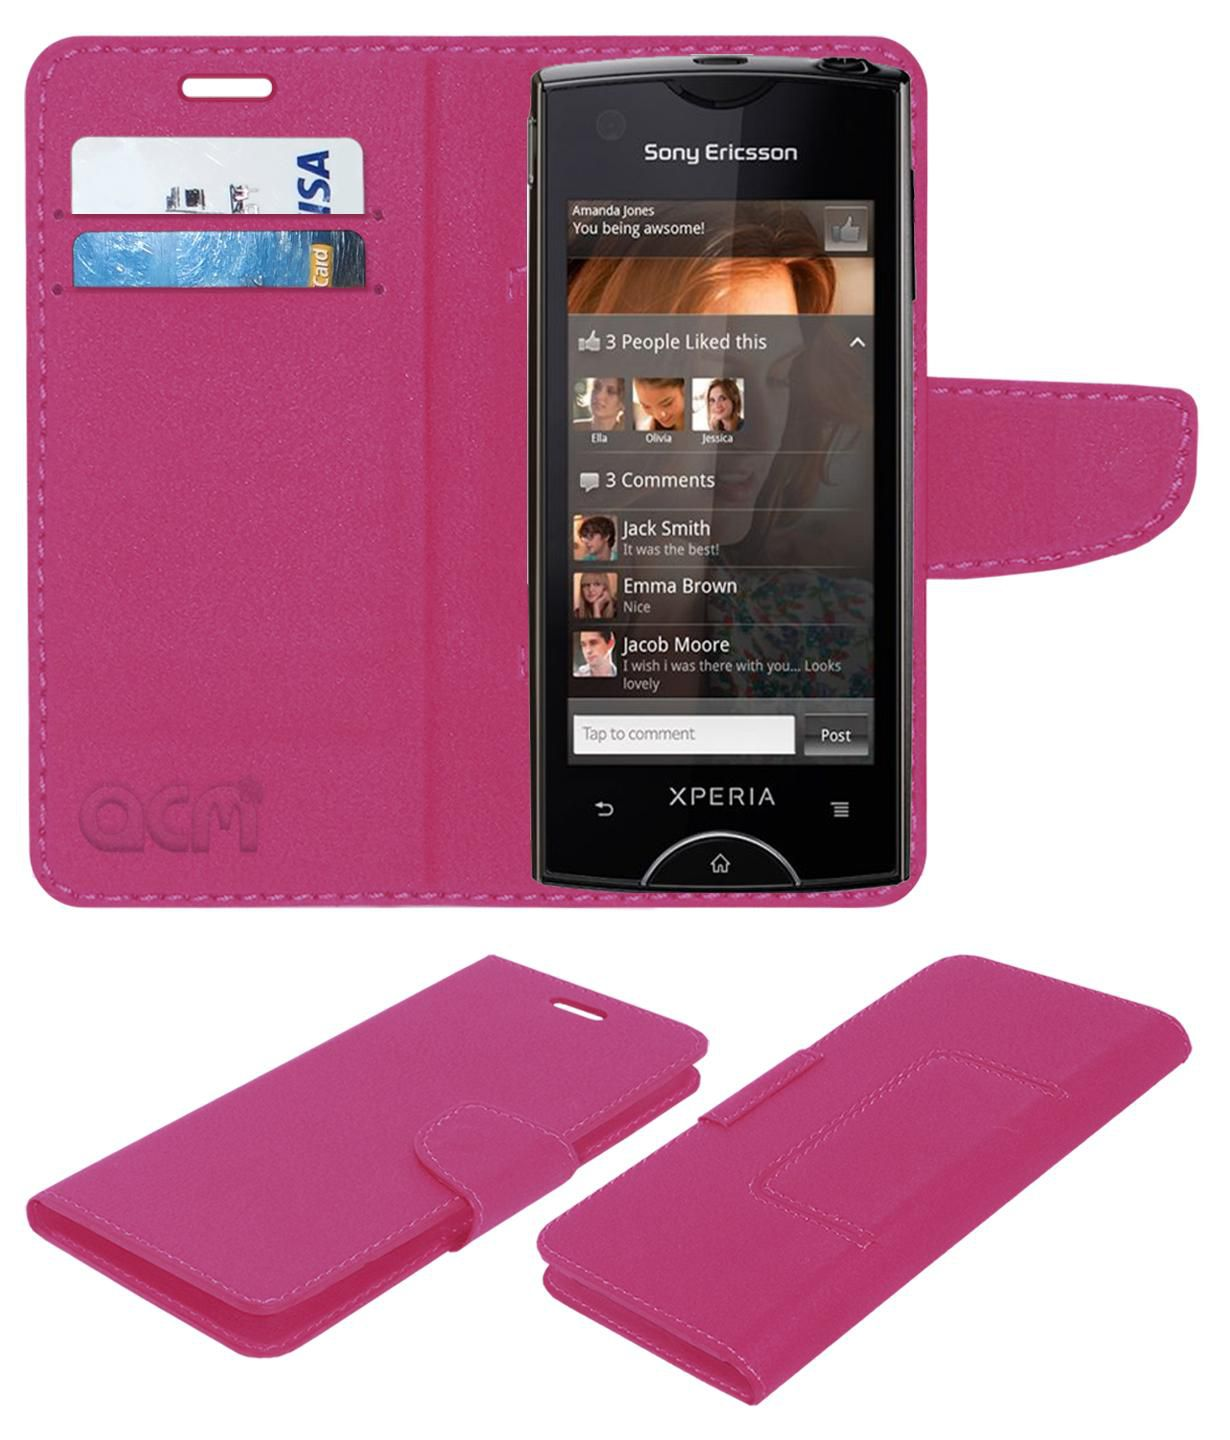 Sony Ericsson Xperia Ray St18i Flip Cover by ACM - Pink